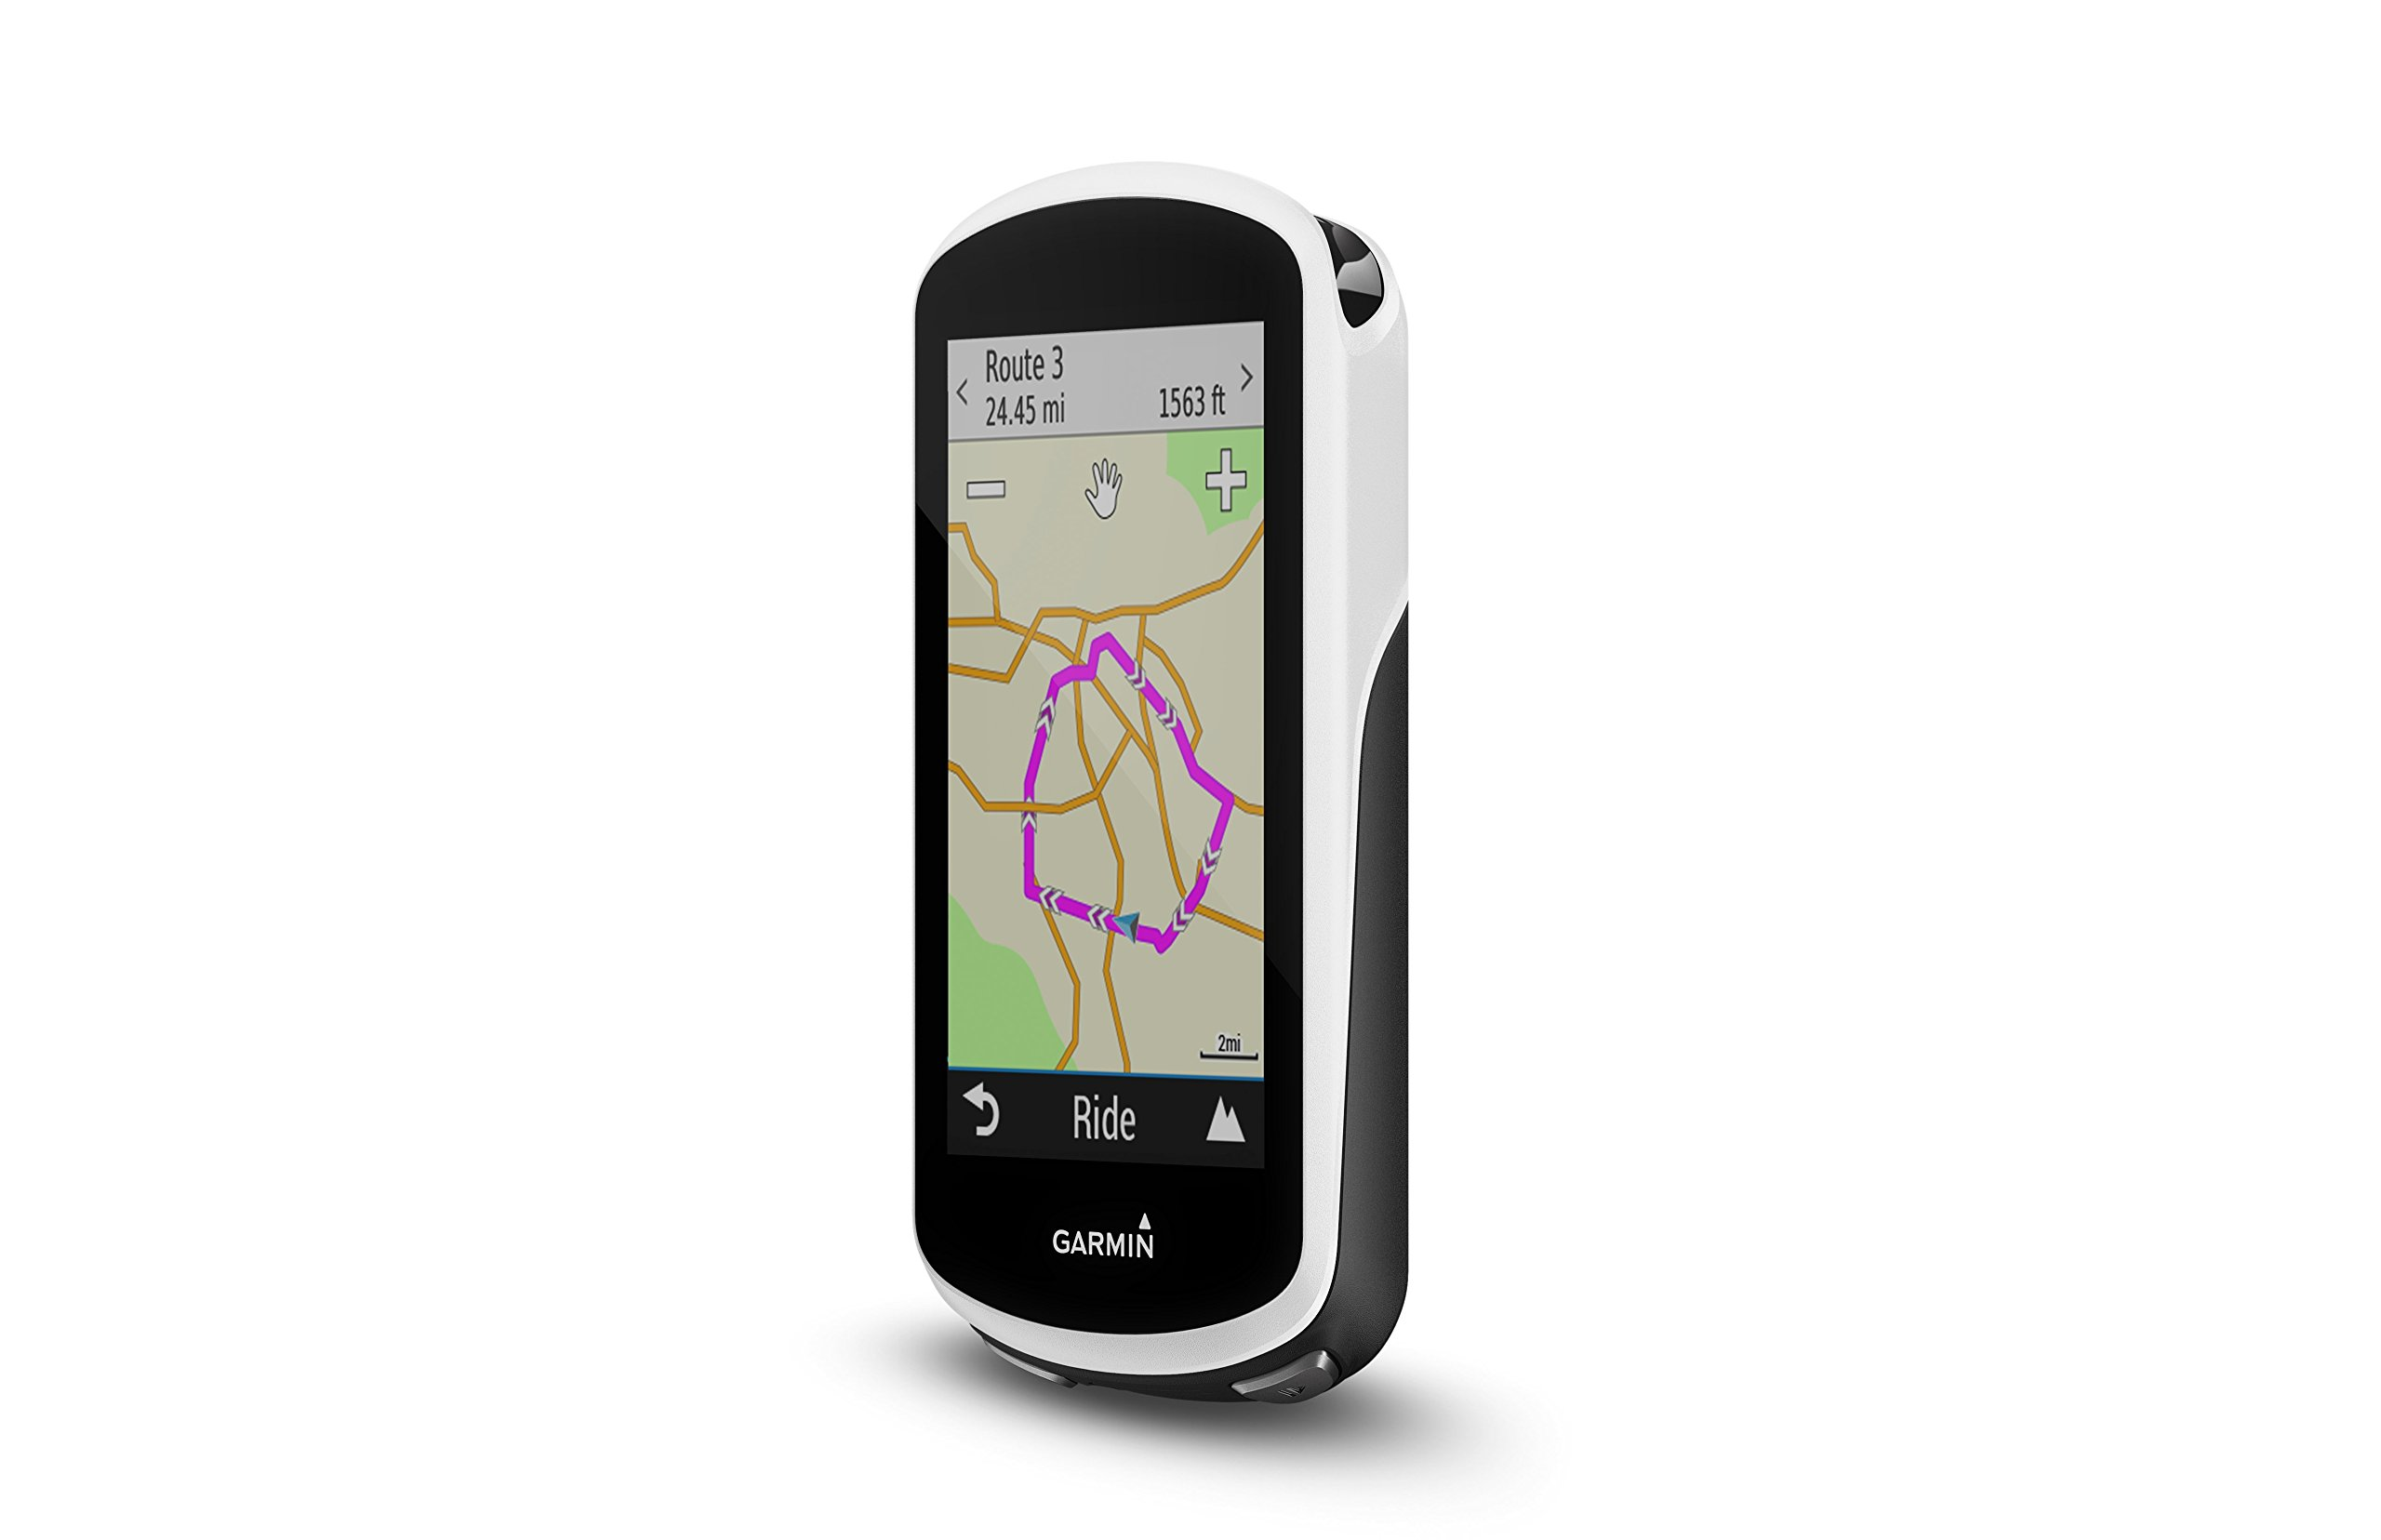 Garmin Edge 1030, 3.5'' GPS Cycling/Bike Computer with Navigation and Connected Features by Garmin